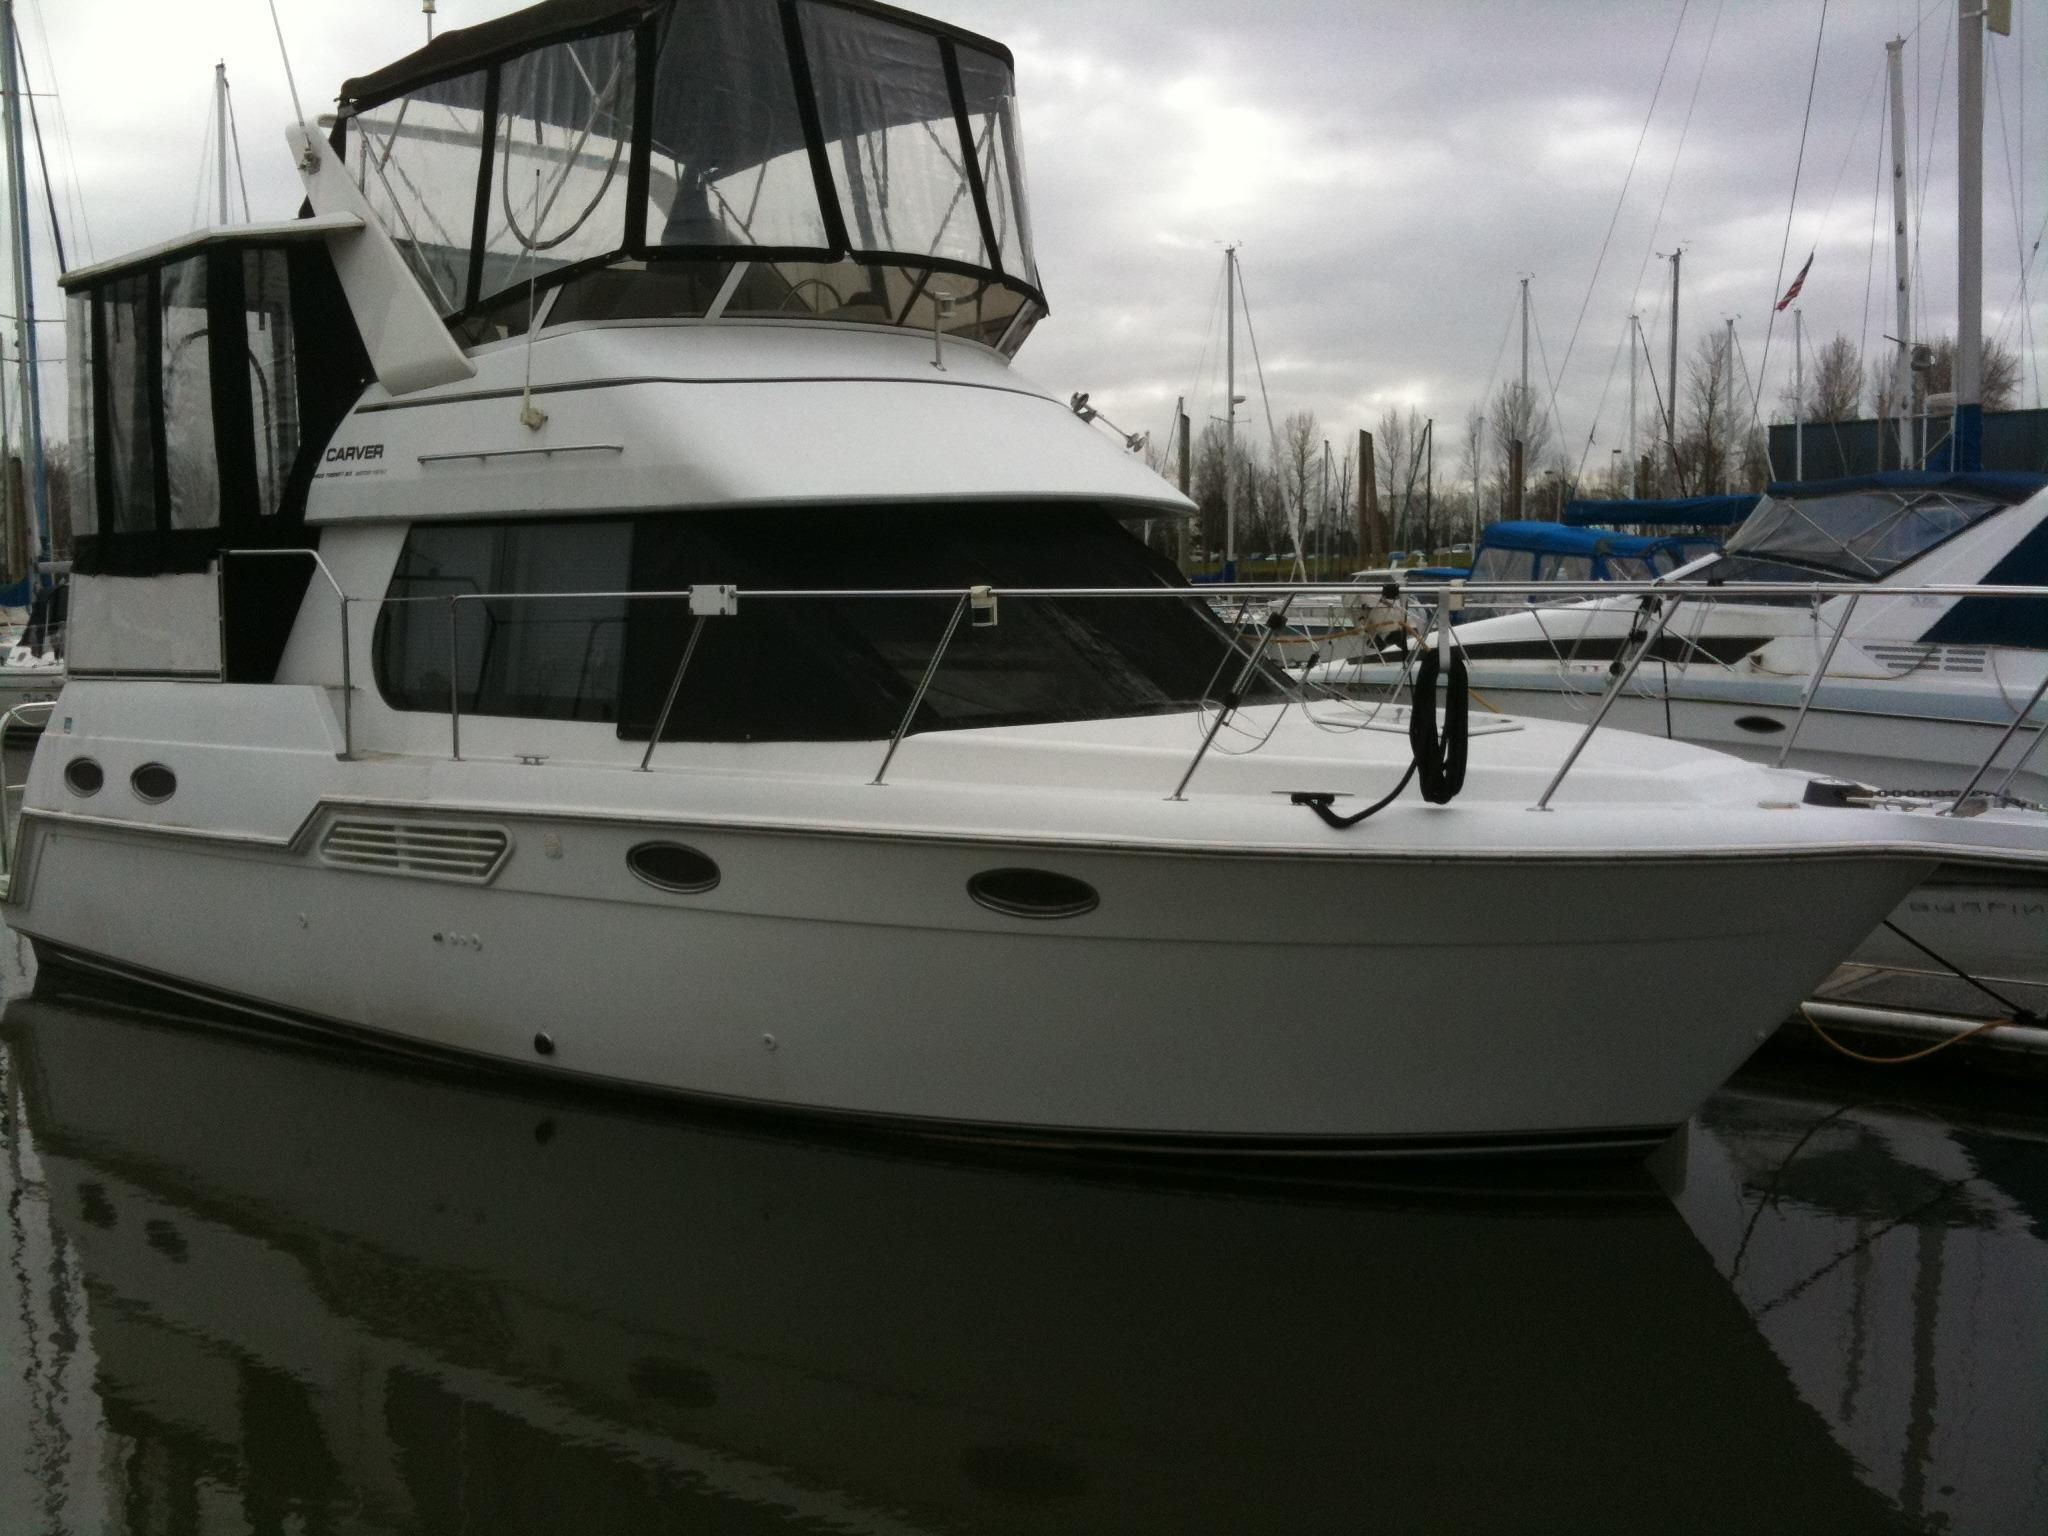 2000 carver 326 aft cabin motor yacht power boat for sale